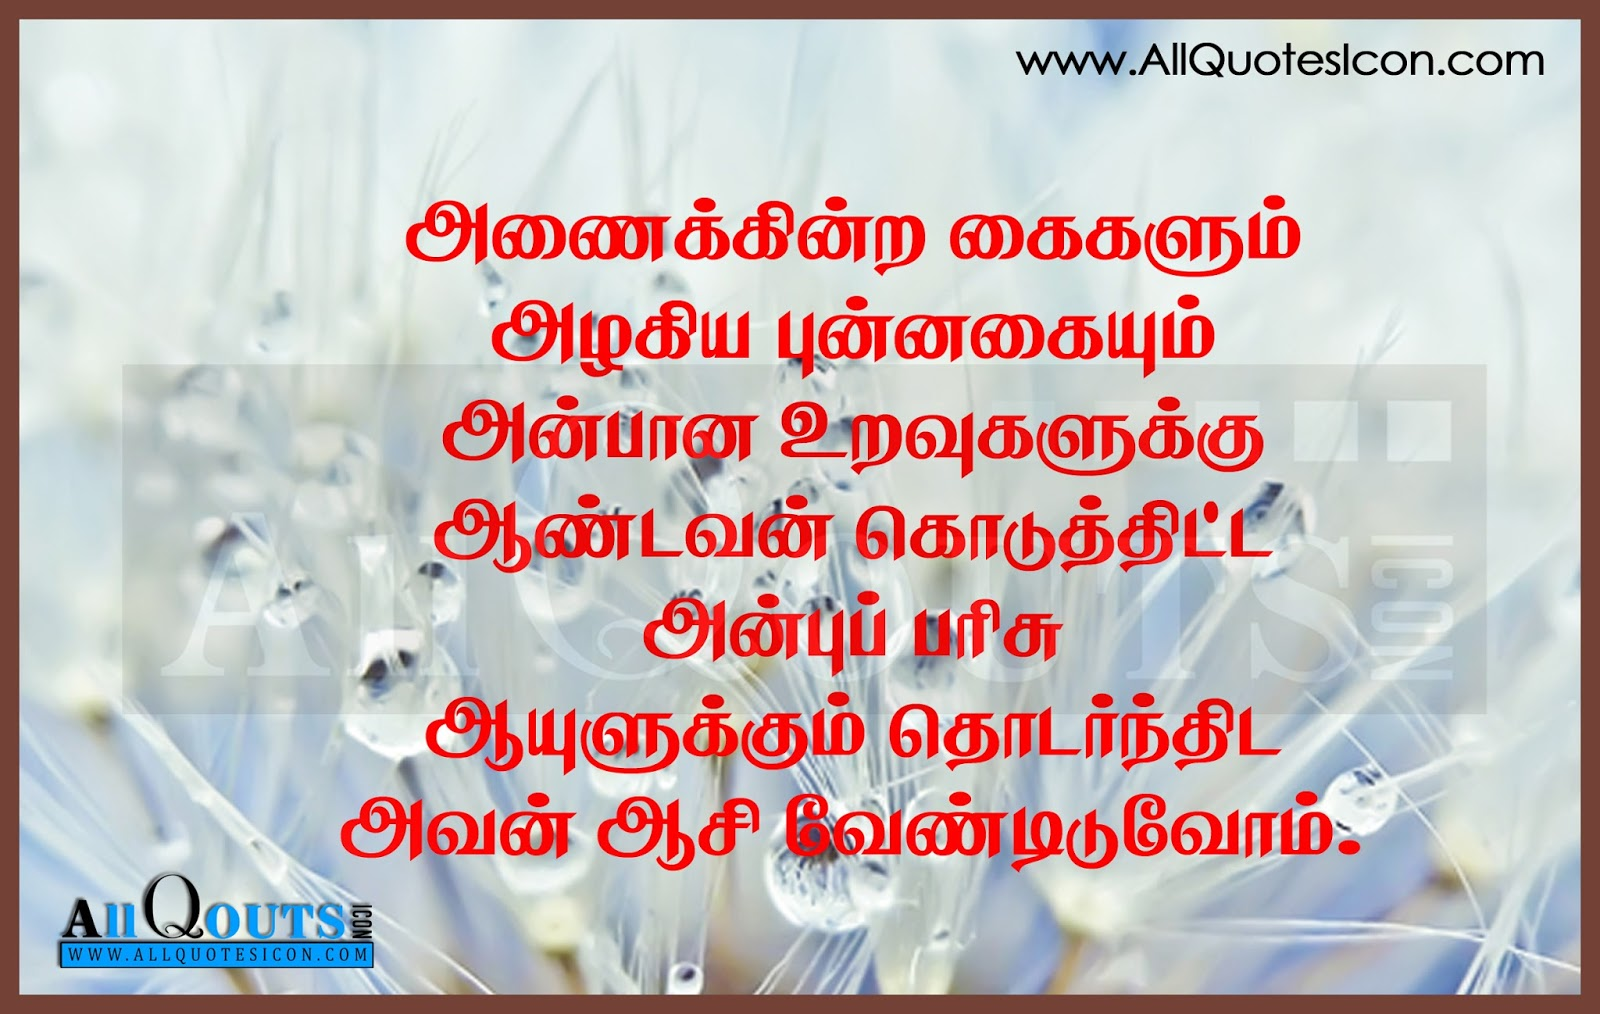 tamil friendship thoughts and sayings   allquotesicon